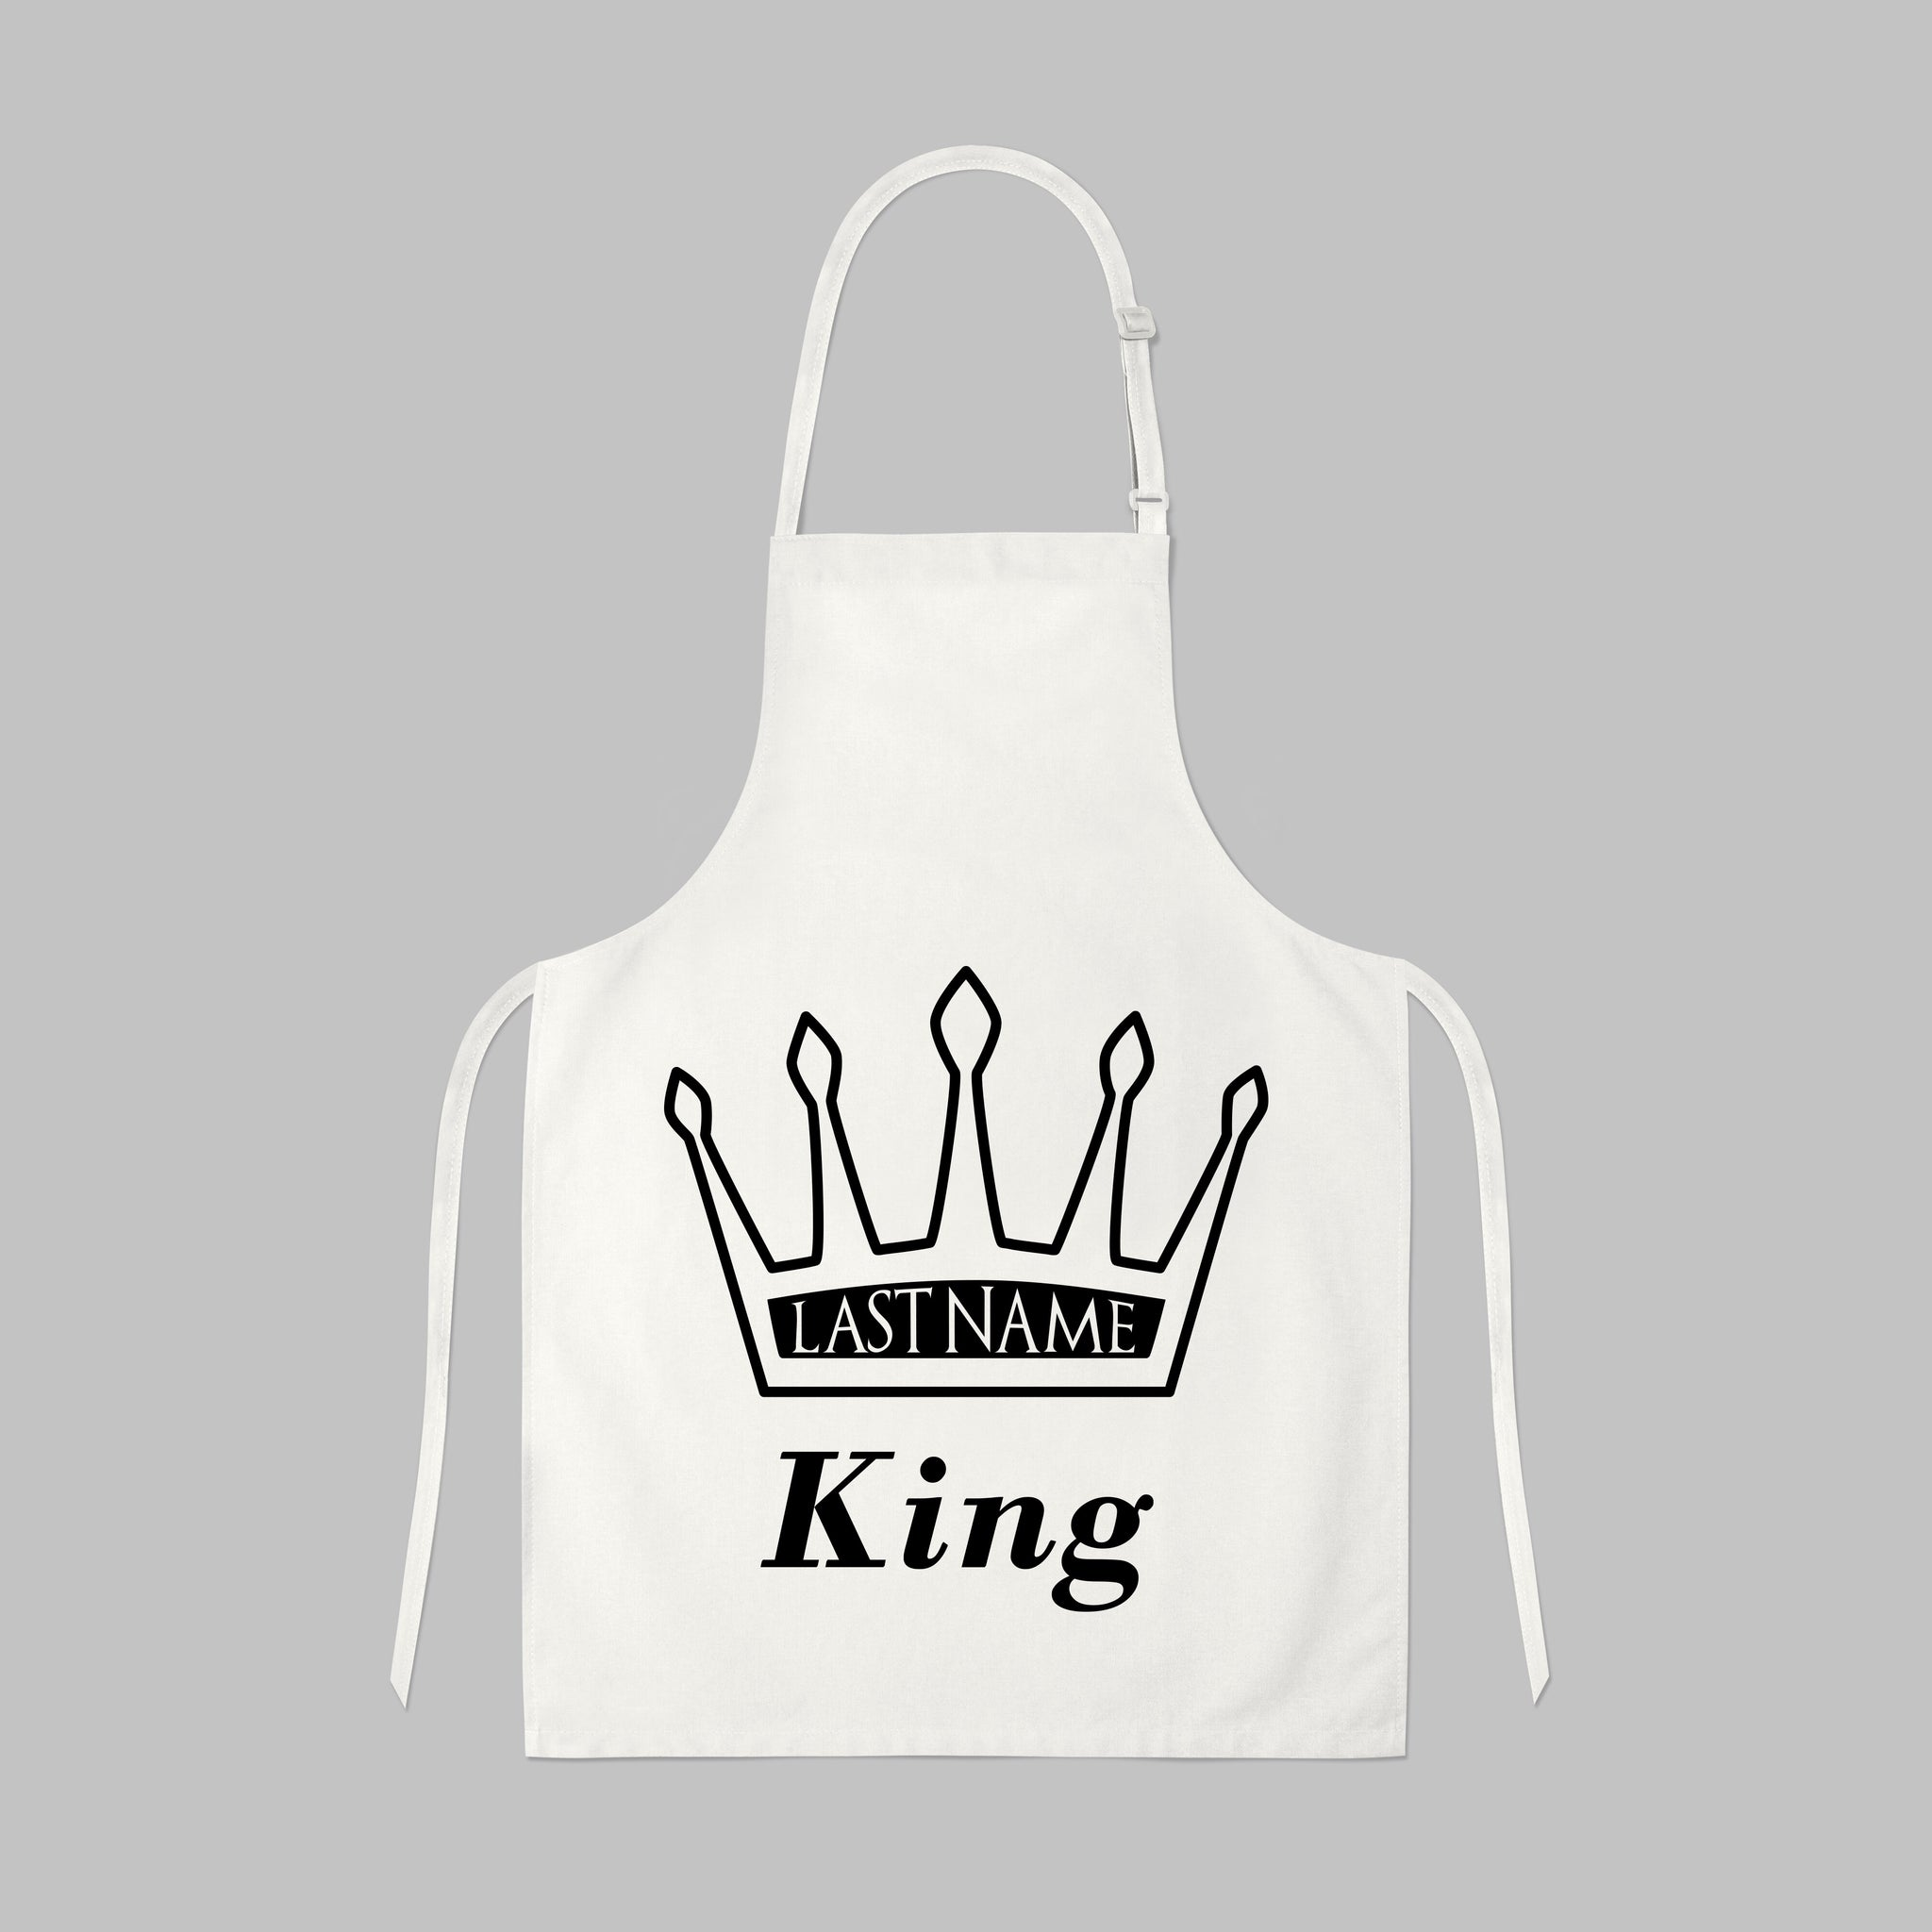 King (Last Name) Apron, Aprons - Peachy Brass